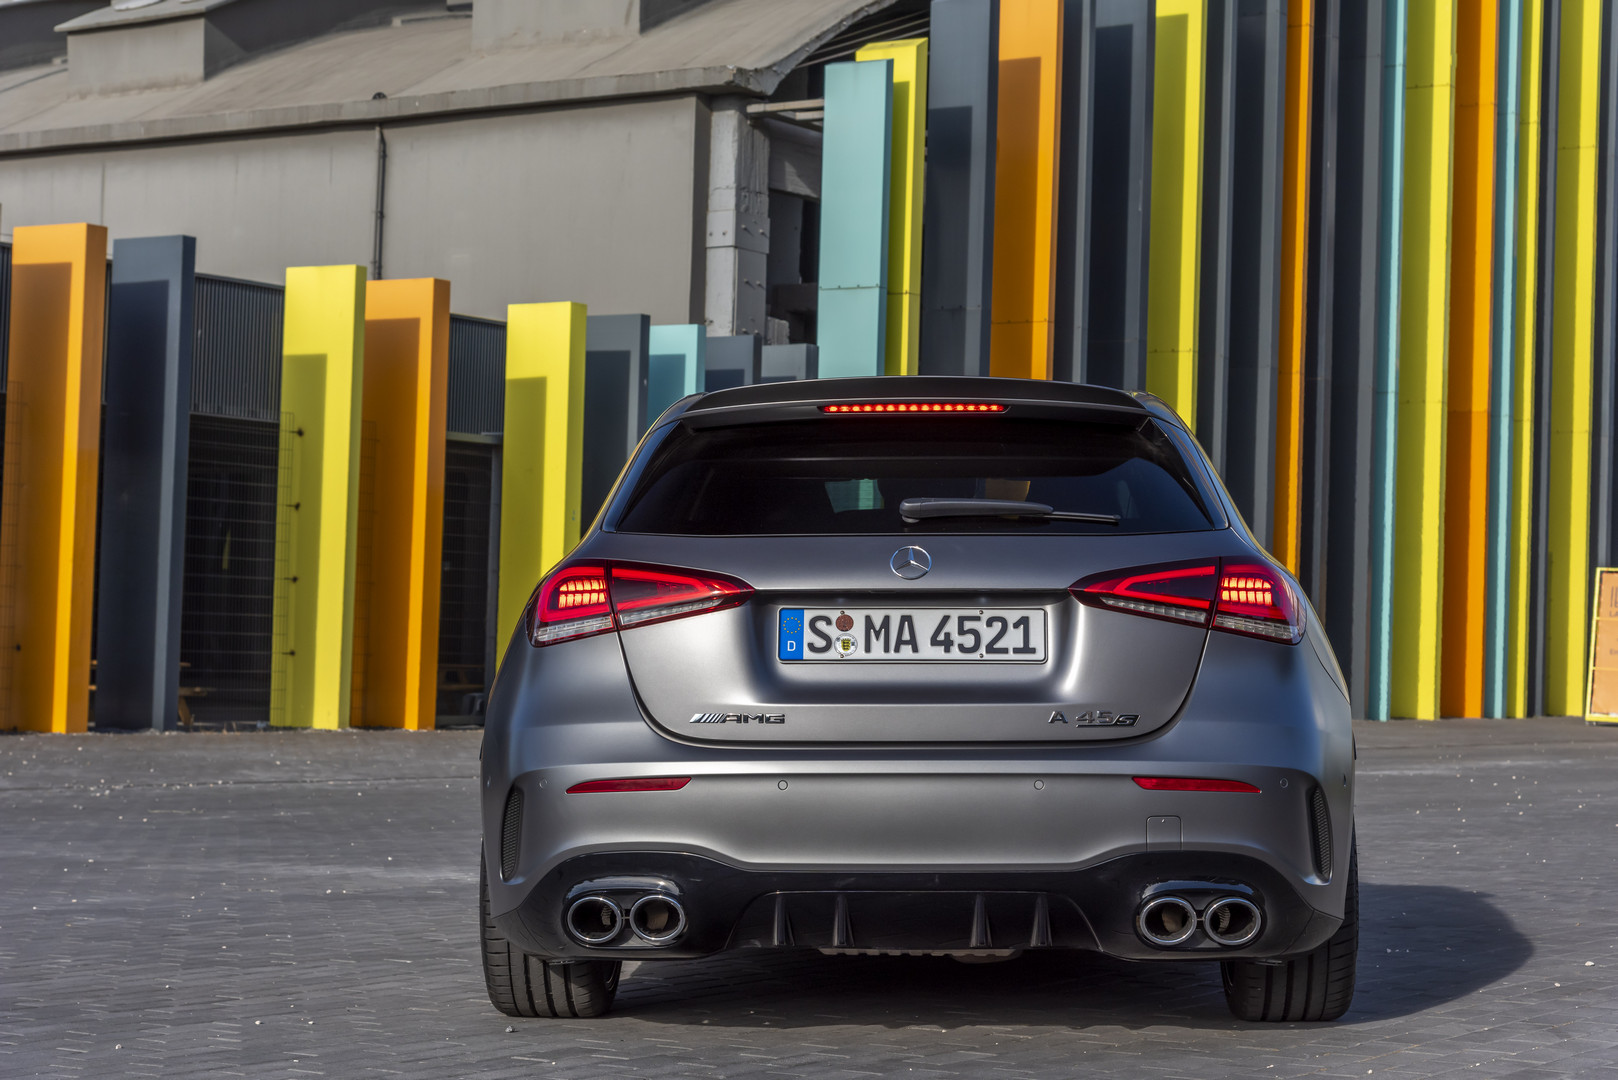 2020 Mercedes-AMG A45 S Rear Lights